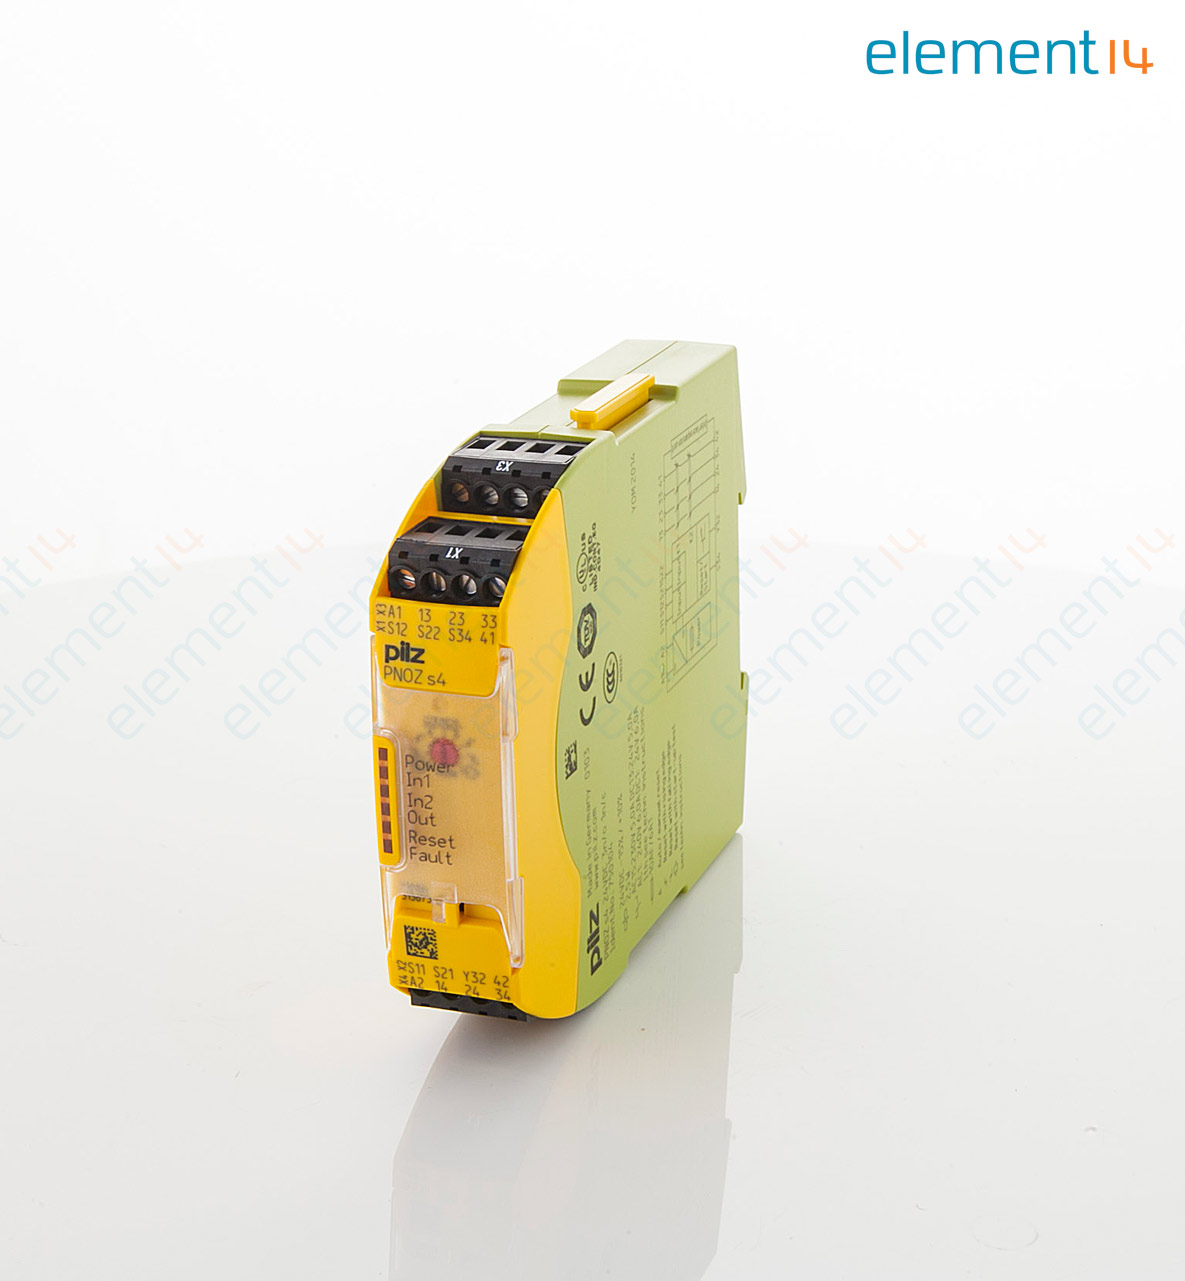 Pilz Safety Relay Wiring Diagram in addition A22E M 12 moreover Pilz Pnoz S3 Wiring Diagram also 6e6d4b19 likewise Safety Relay Wiring Diagram. on omron safety relay wiring diagram